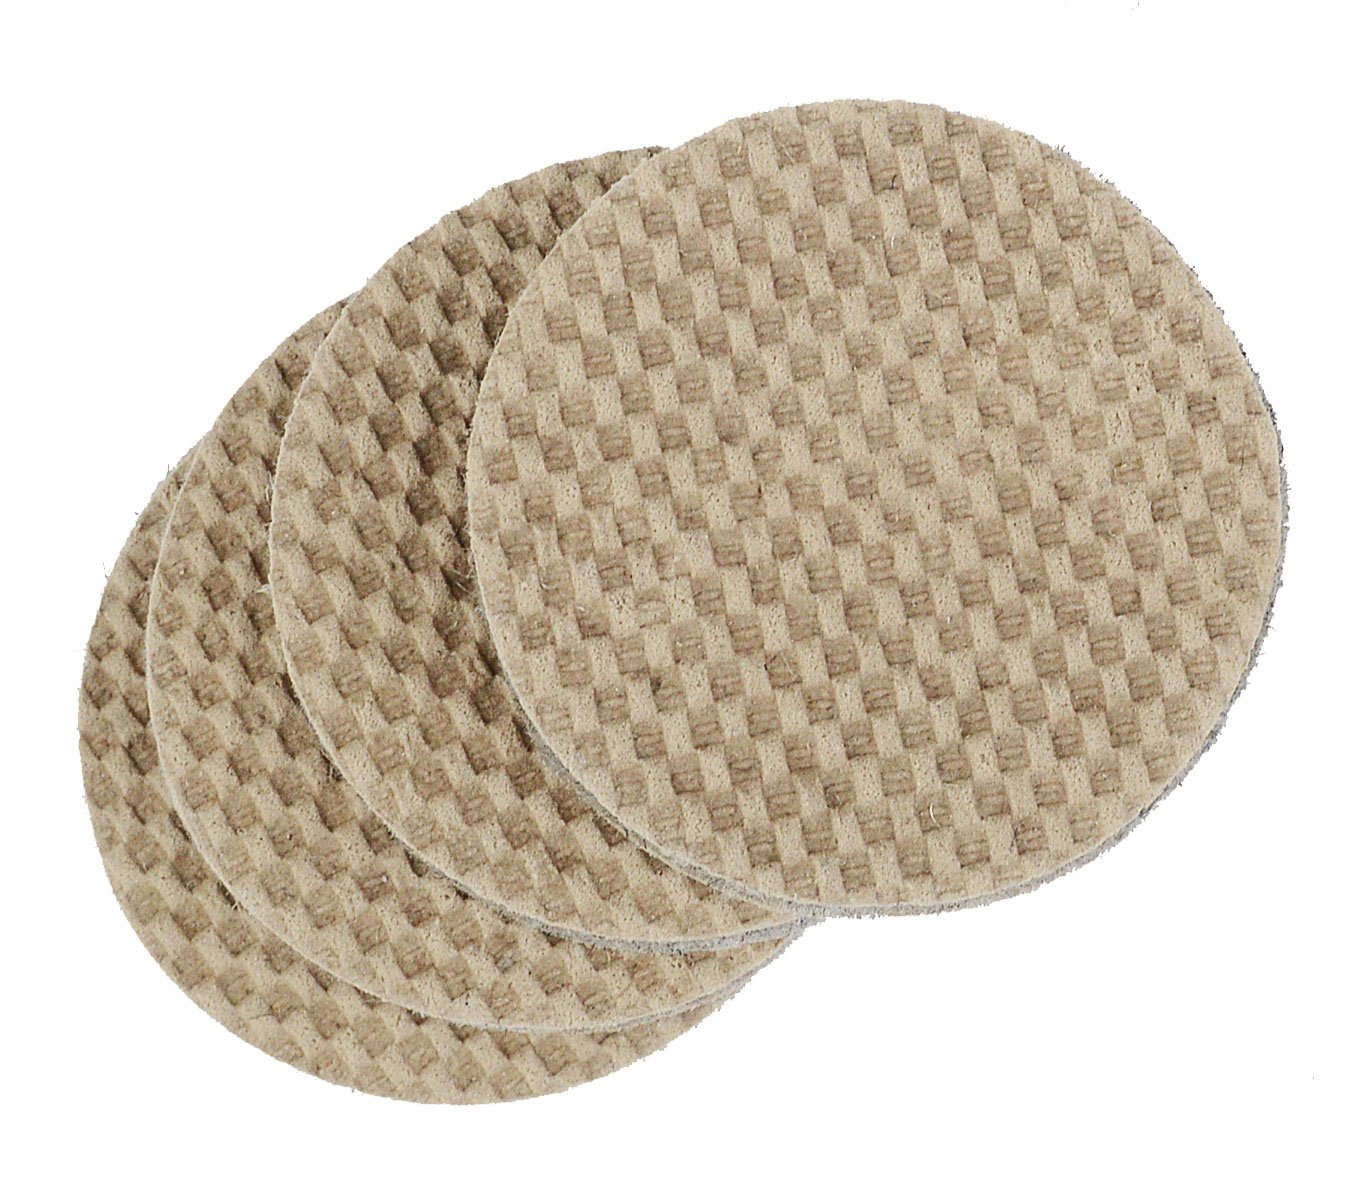 DURA-GRIP® Heavy Duty 2'' Round, 3/8'' Thick Non-Slip Rubber (No glue or nails) Furniture Floor Pads, Protectors-Set of 8